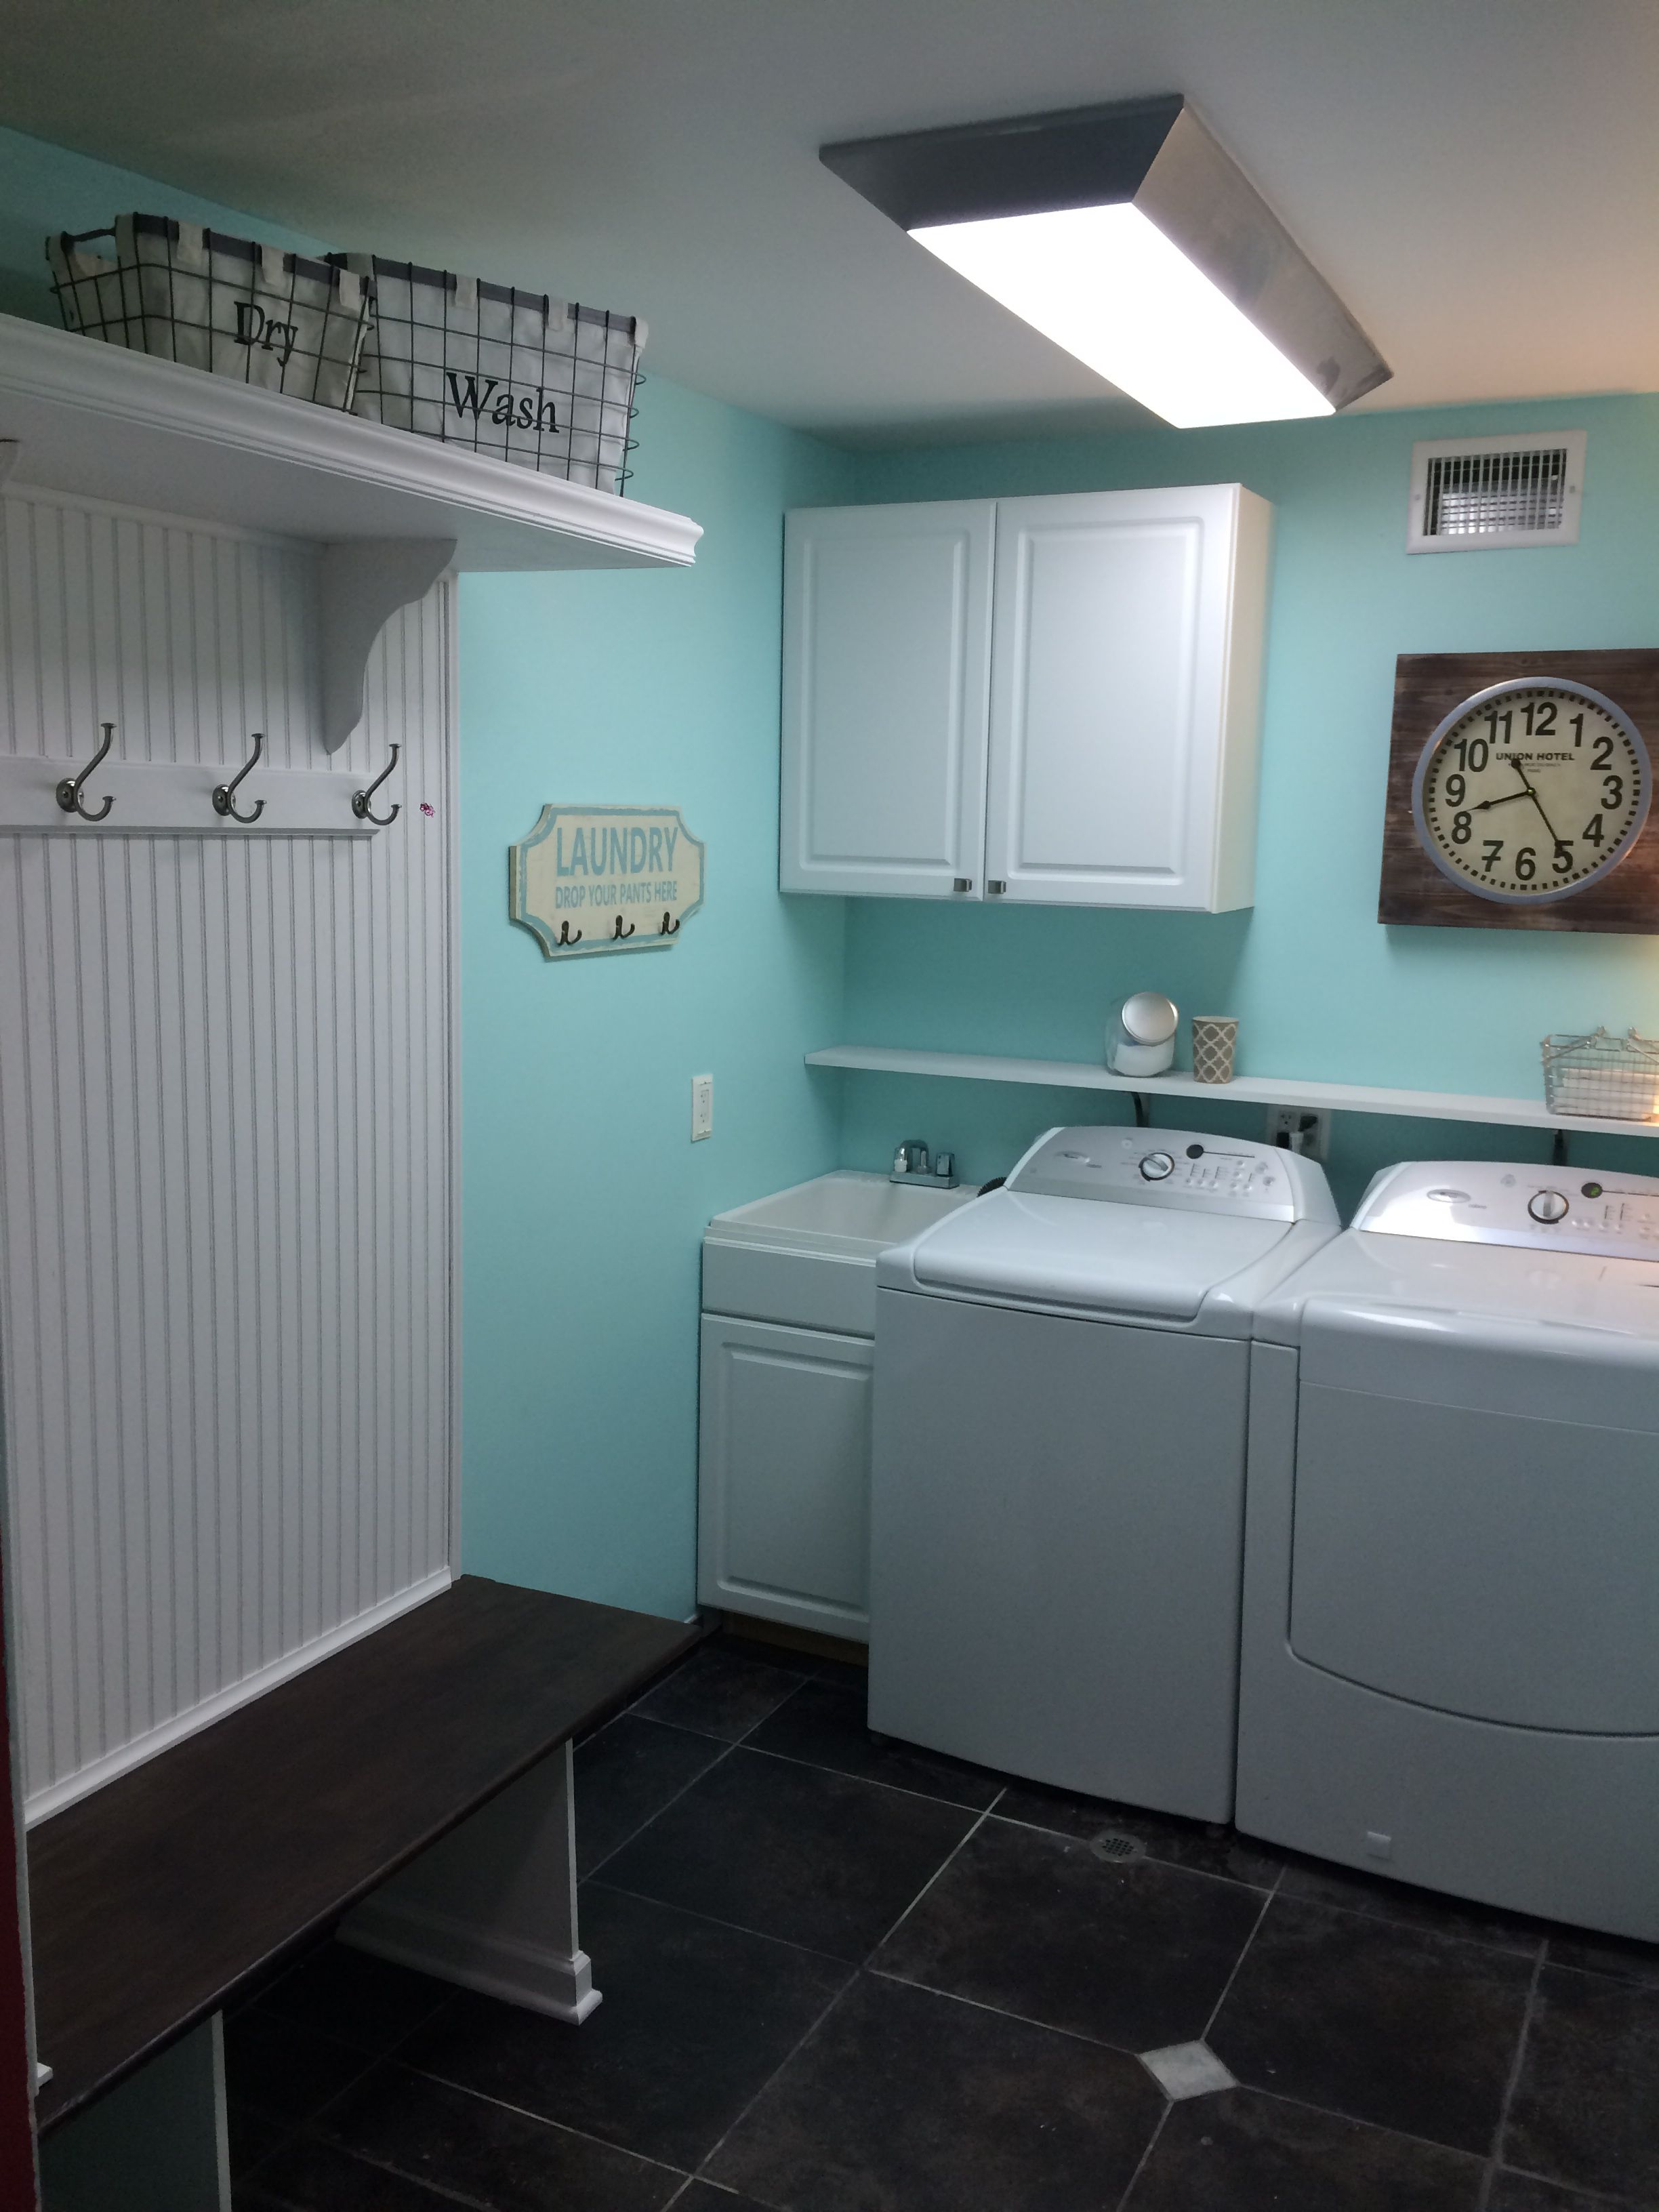 Mud room remodel - Tame Teal from Sherwin Williams | For the Home ...